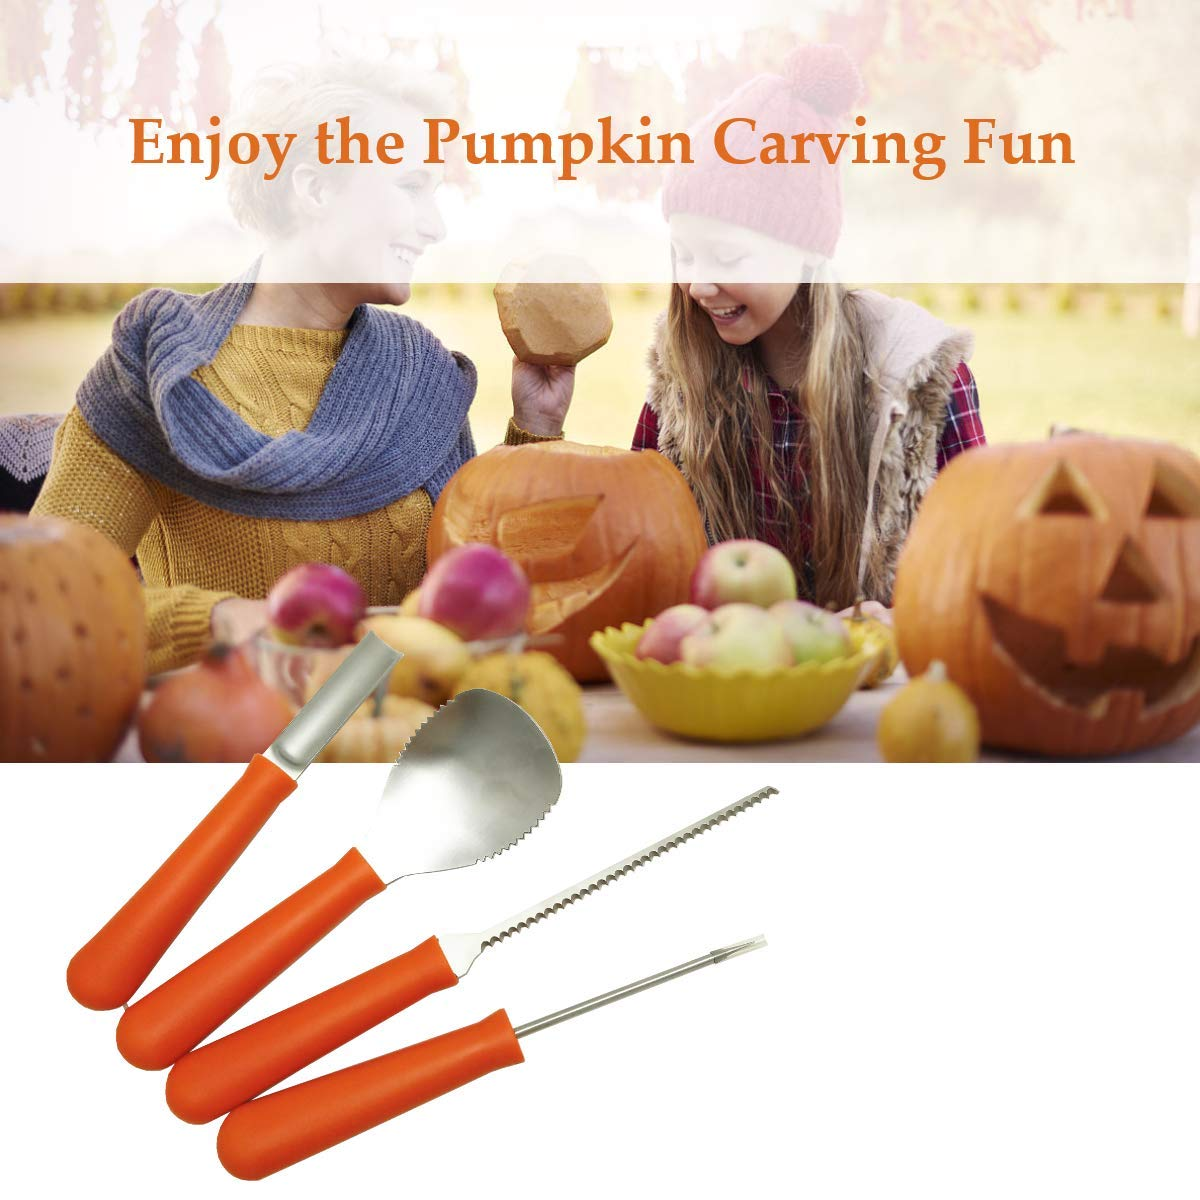 Professional Pumpkin Carving Tools Kit【Set of 4】Premium Heavy Duty Stainless Steel Knives for Easily Sculpt Halloween Jack-O-Lanterns with【Many Pumpkin Carved Stencils/Patterns/Templates】 by AUXIN (Image #5)